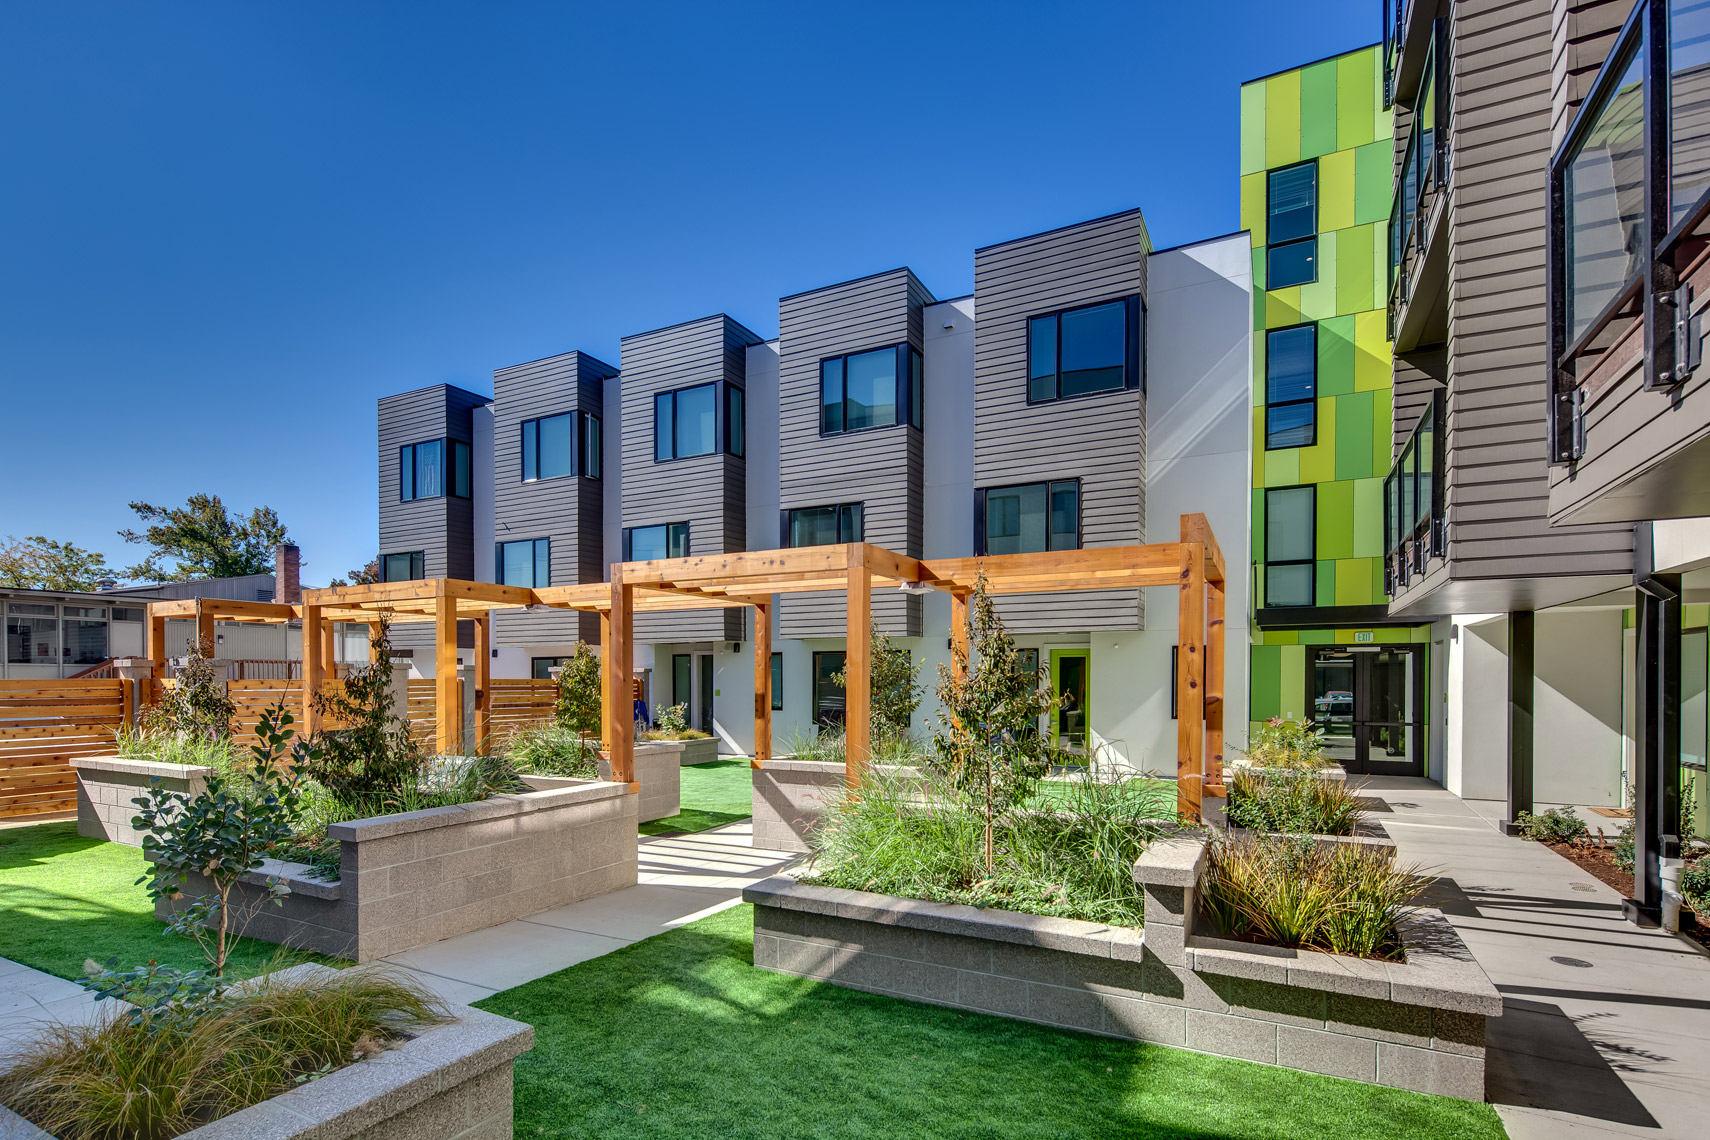 THEANDY_MULTIFAMILY_COURTYARD_SMALL